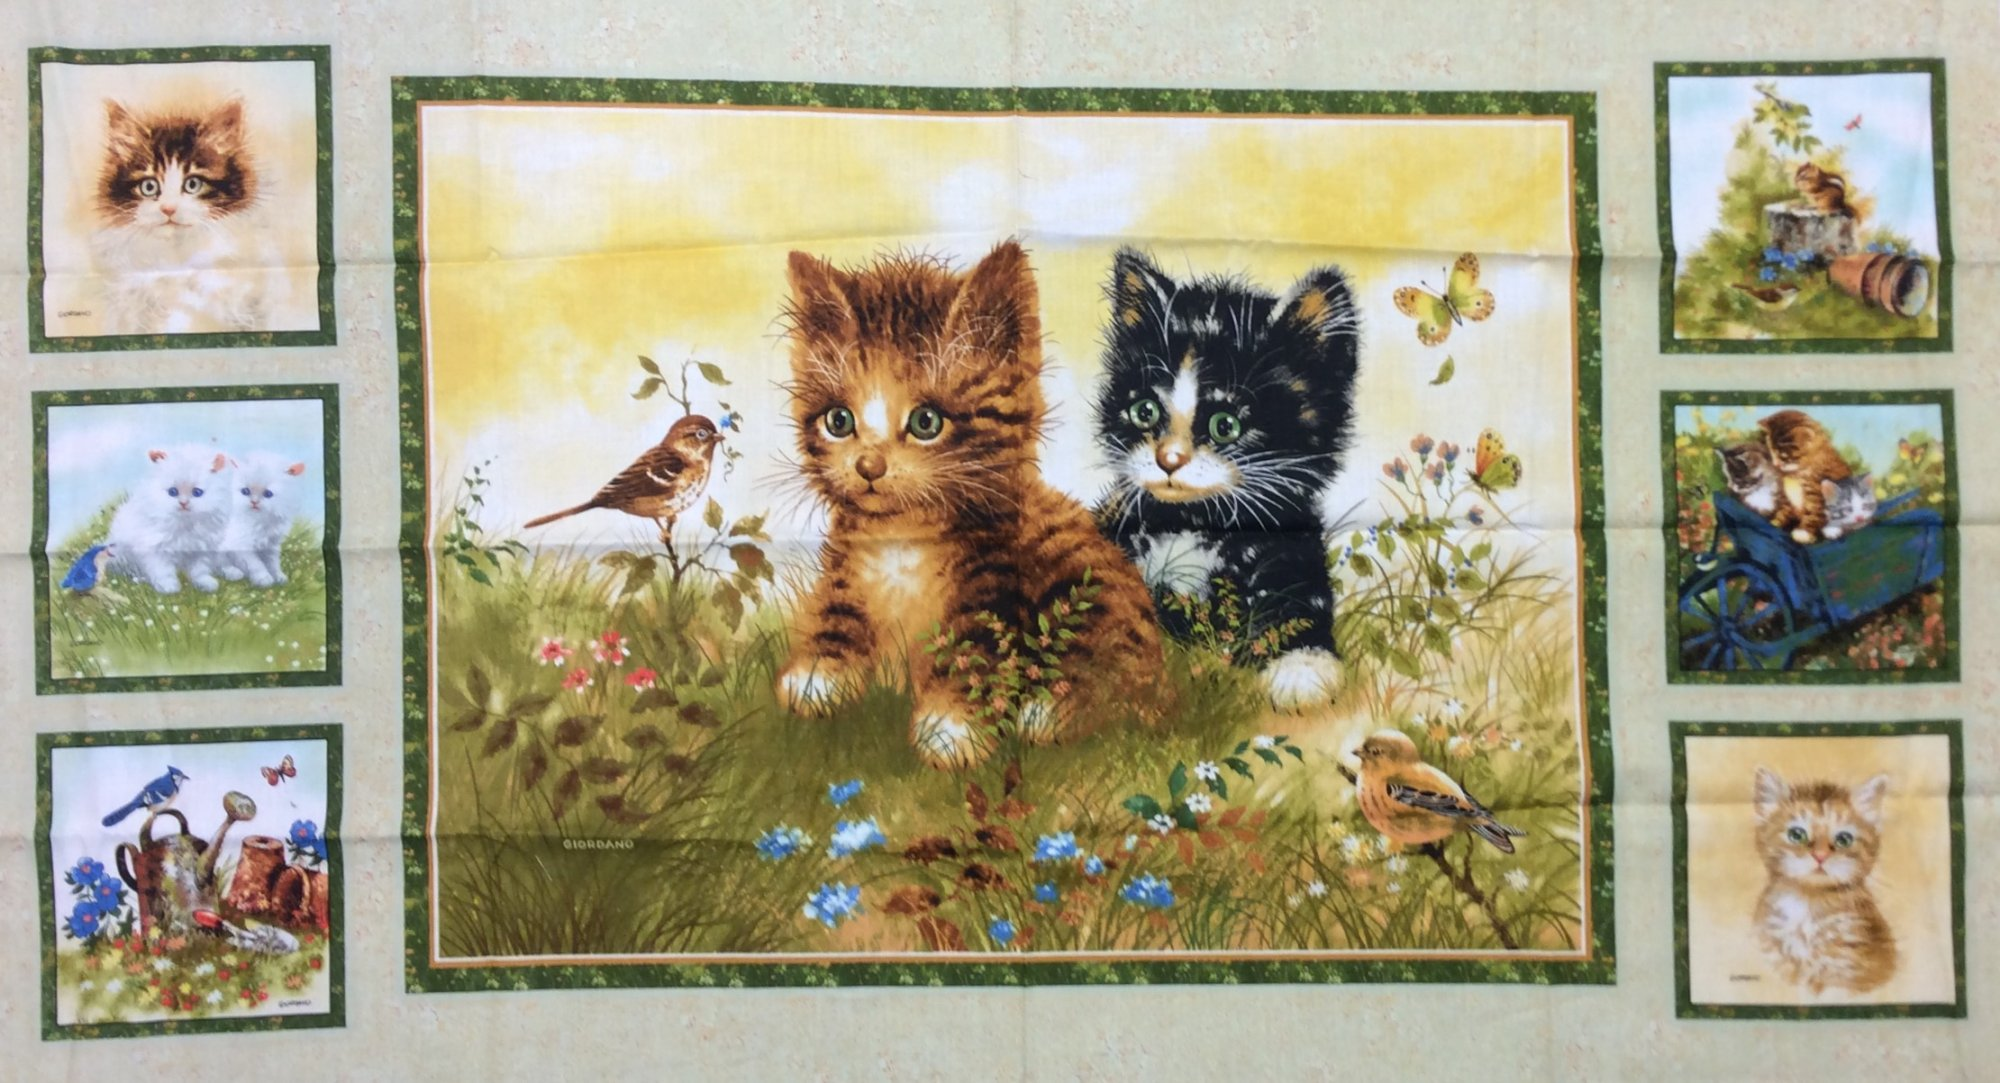 Kitten Cat Kitty Retro Forest Creatures Squirrel Farm Butterfly Landscape Panel Cotton Fabric Quilt Fabric AB0114